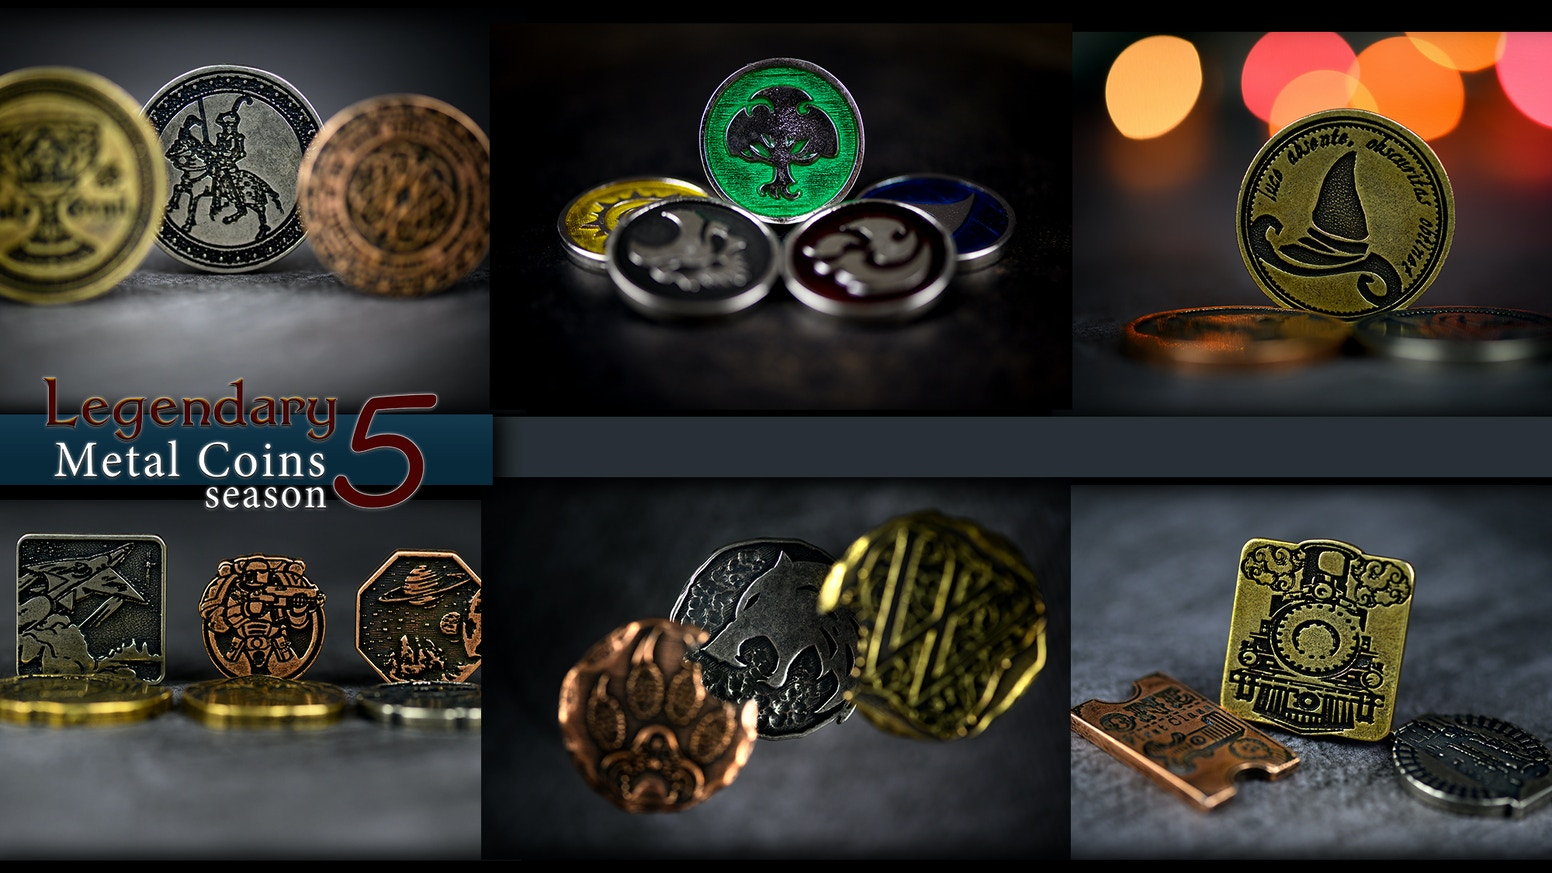 Fantastic metal coins that will help your games shine and enrich your gaming experience. Back for season 5 with new exciting ideas!